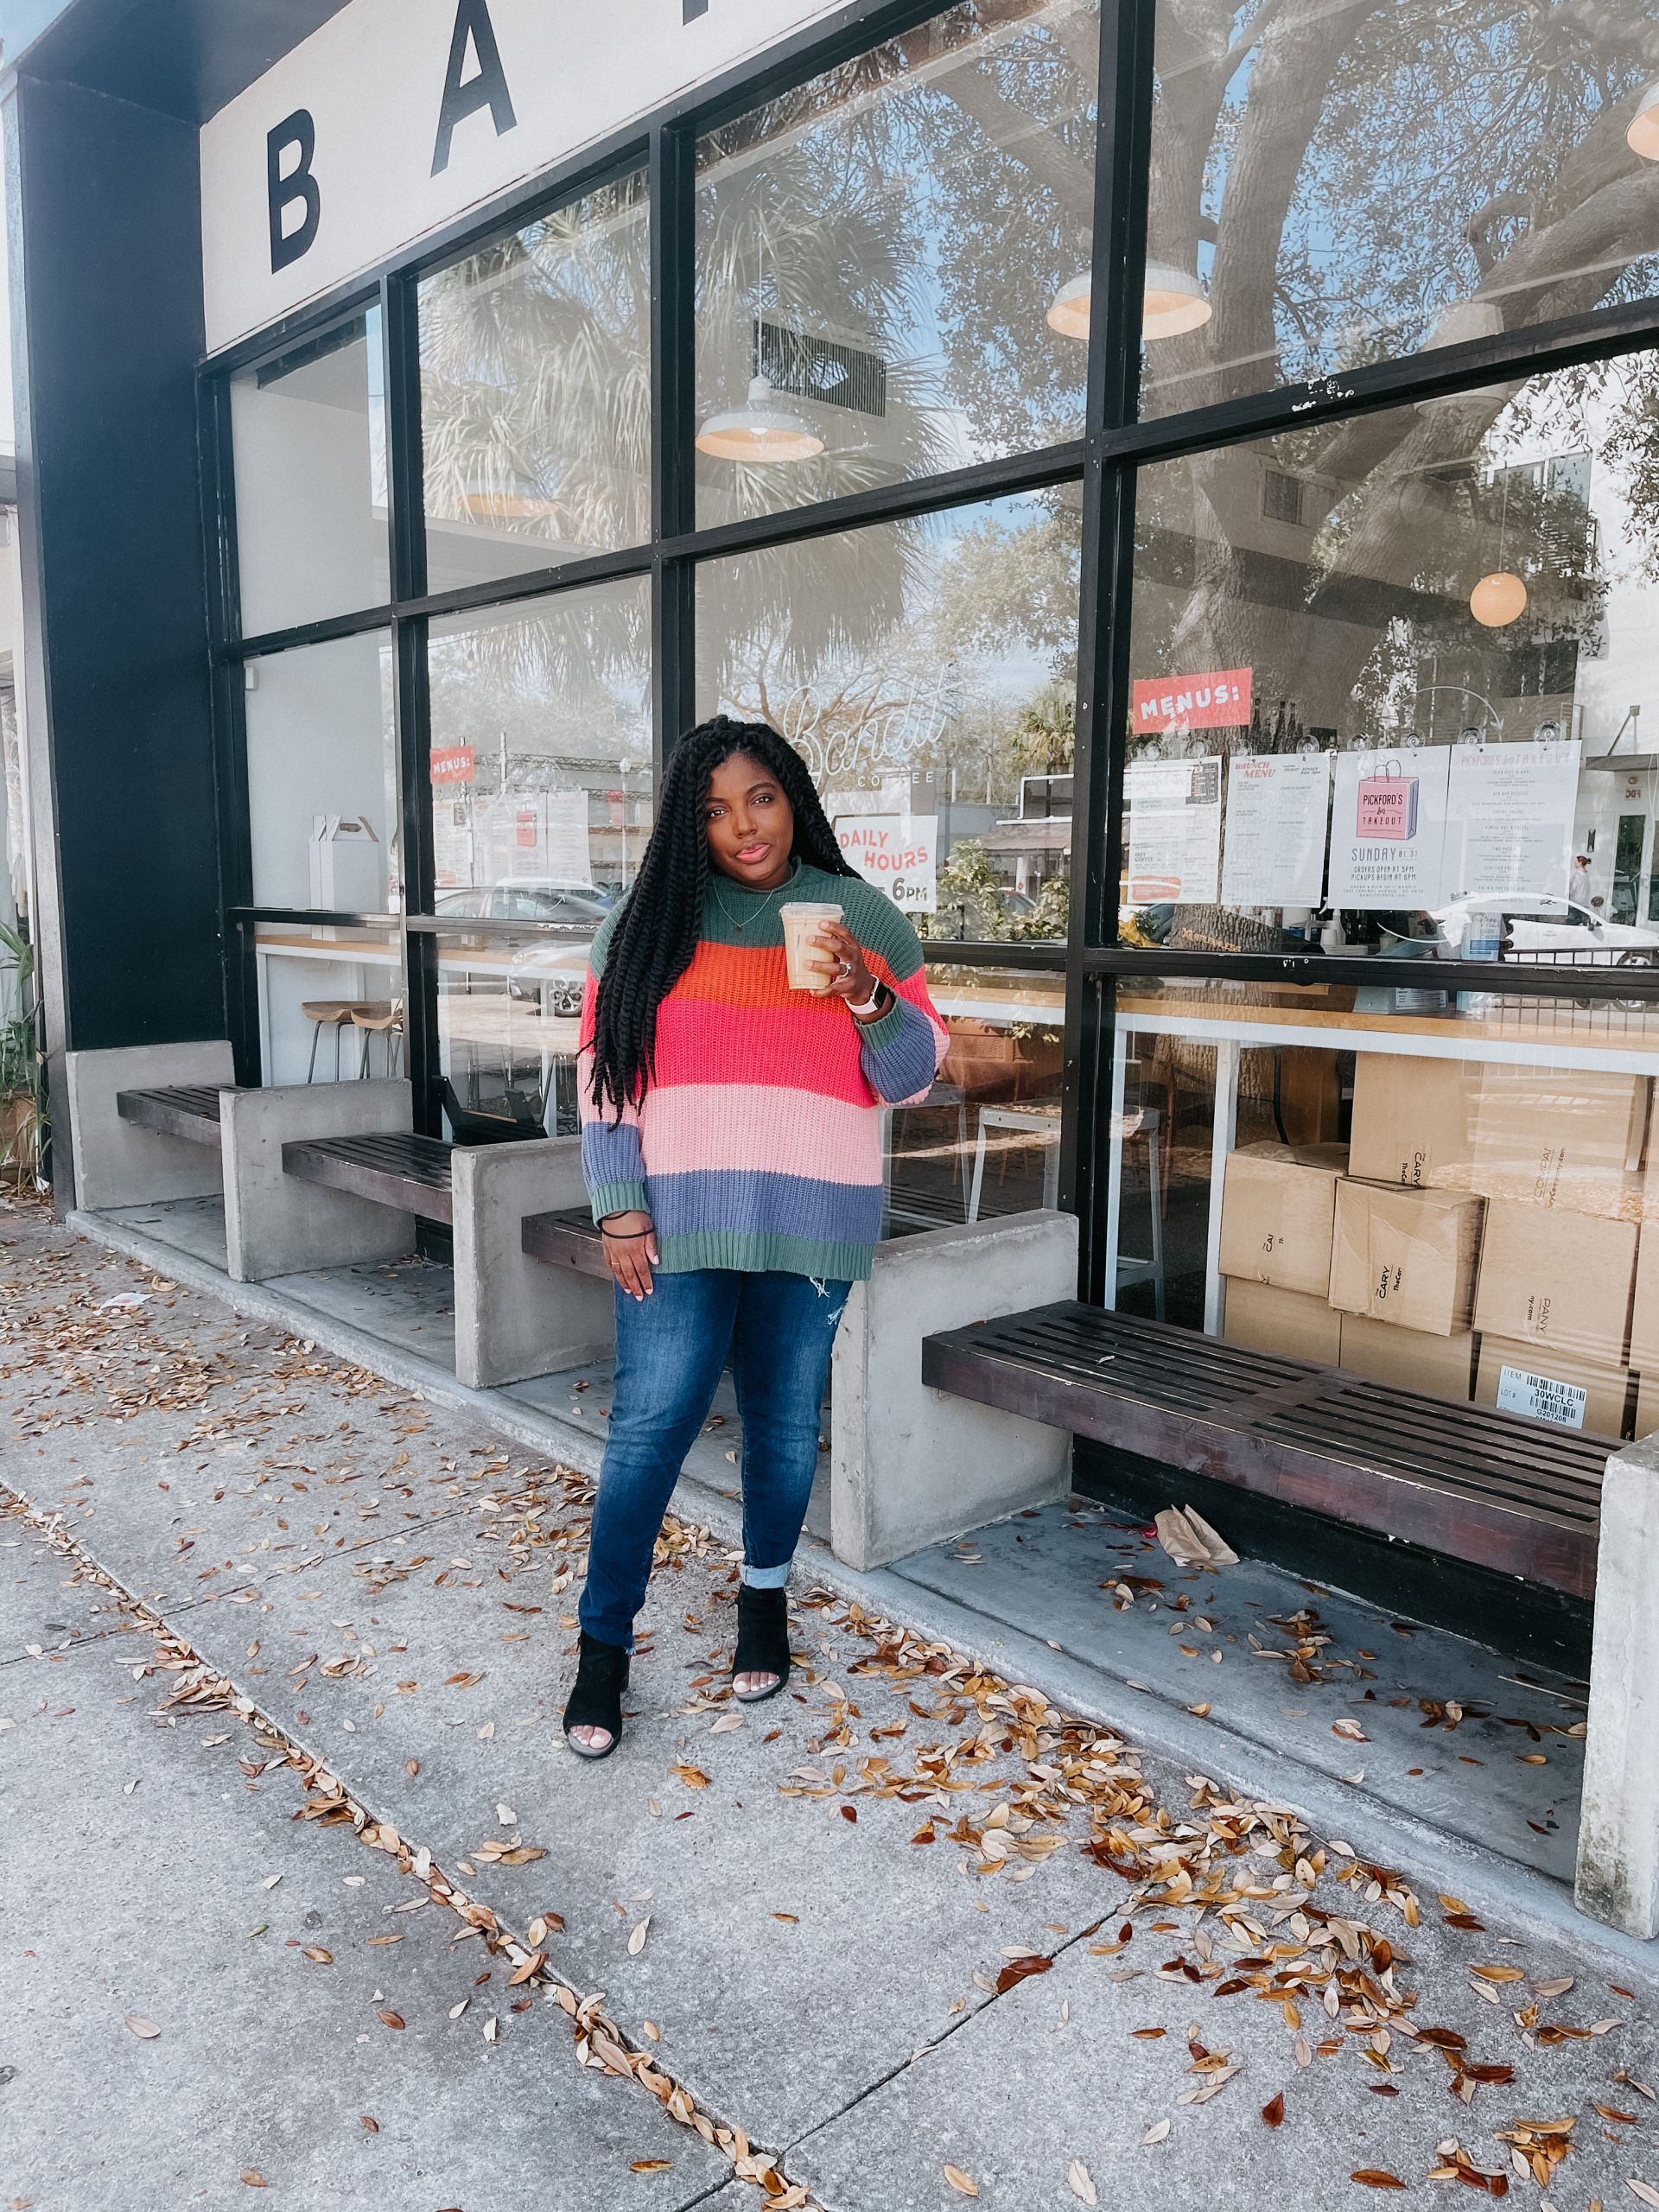 7 Best Things To Do In St Petersburg, Florida | tampa blogger ayana lage stands outside of bandit coffee in st. petersburg, florida